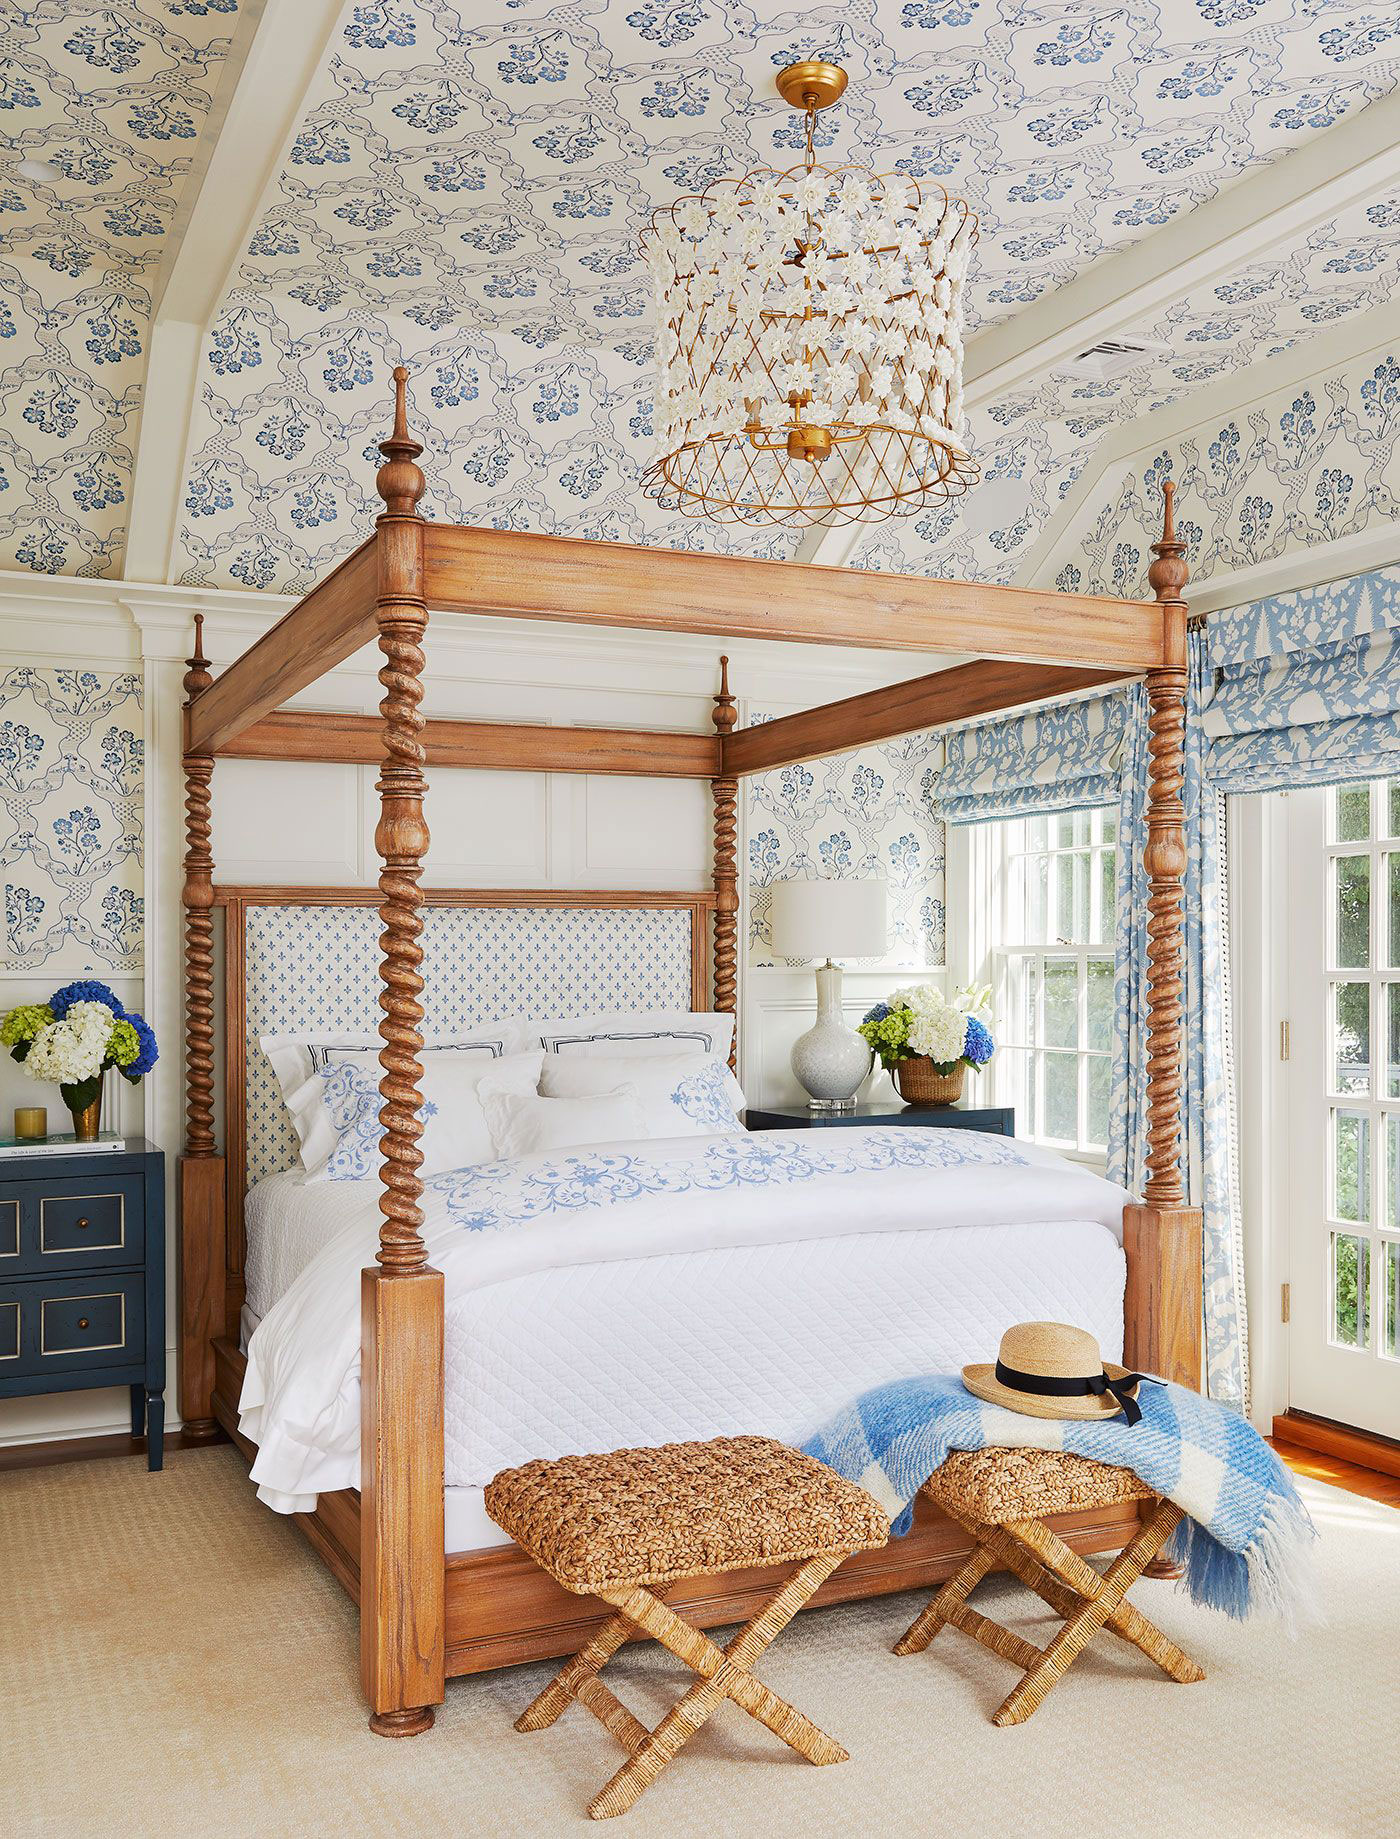 Bedroom with ceiling wallpaper and flower chandelier